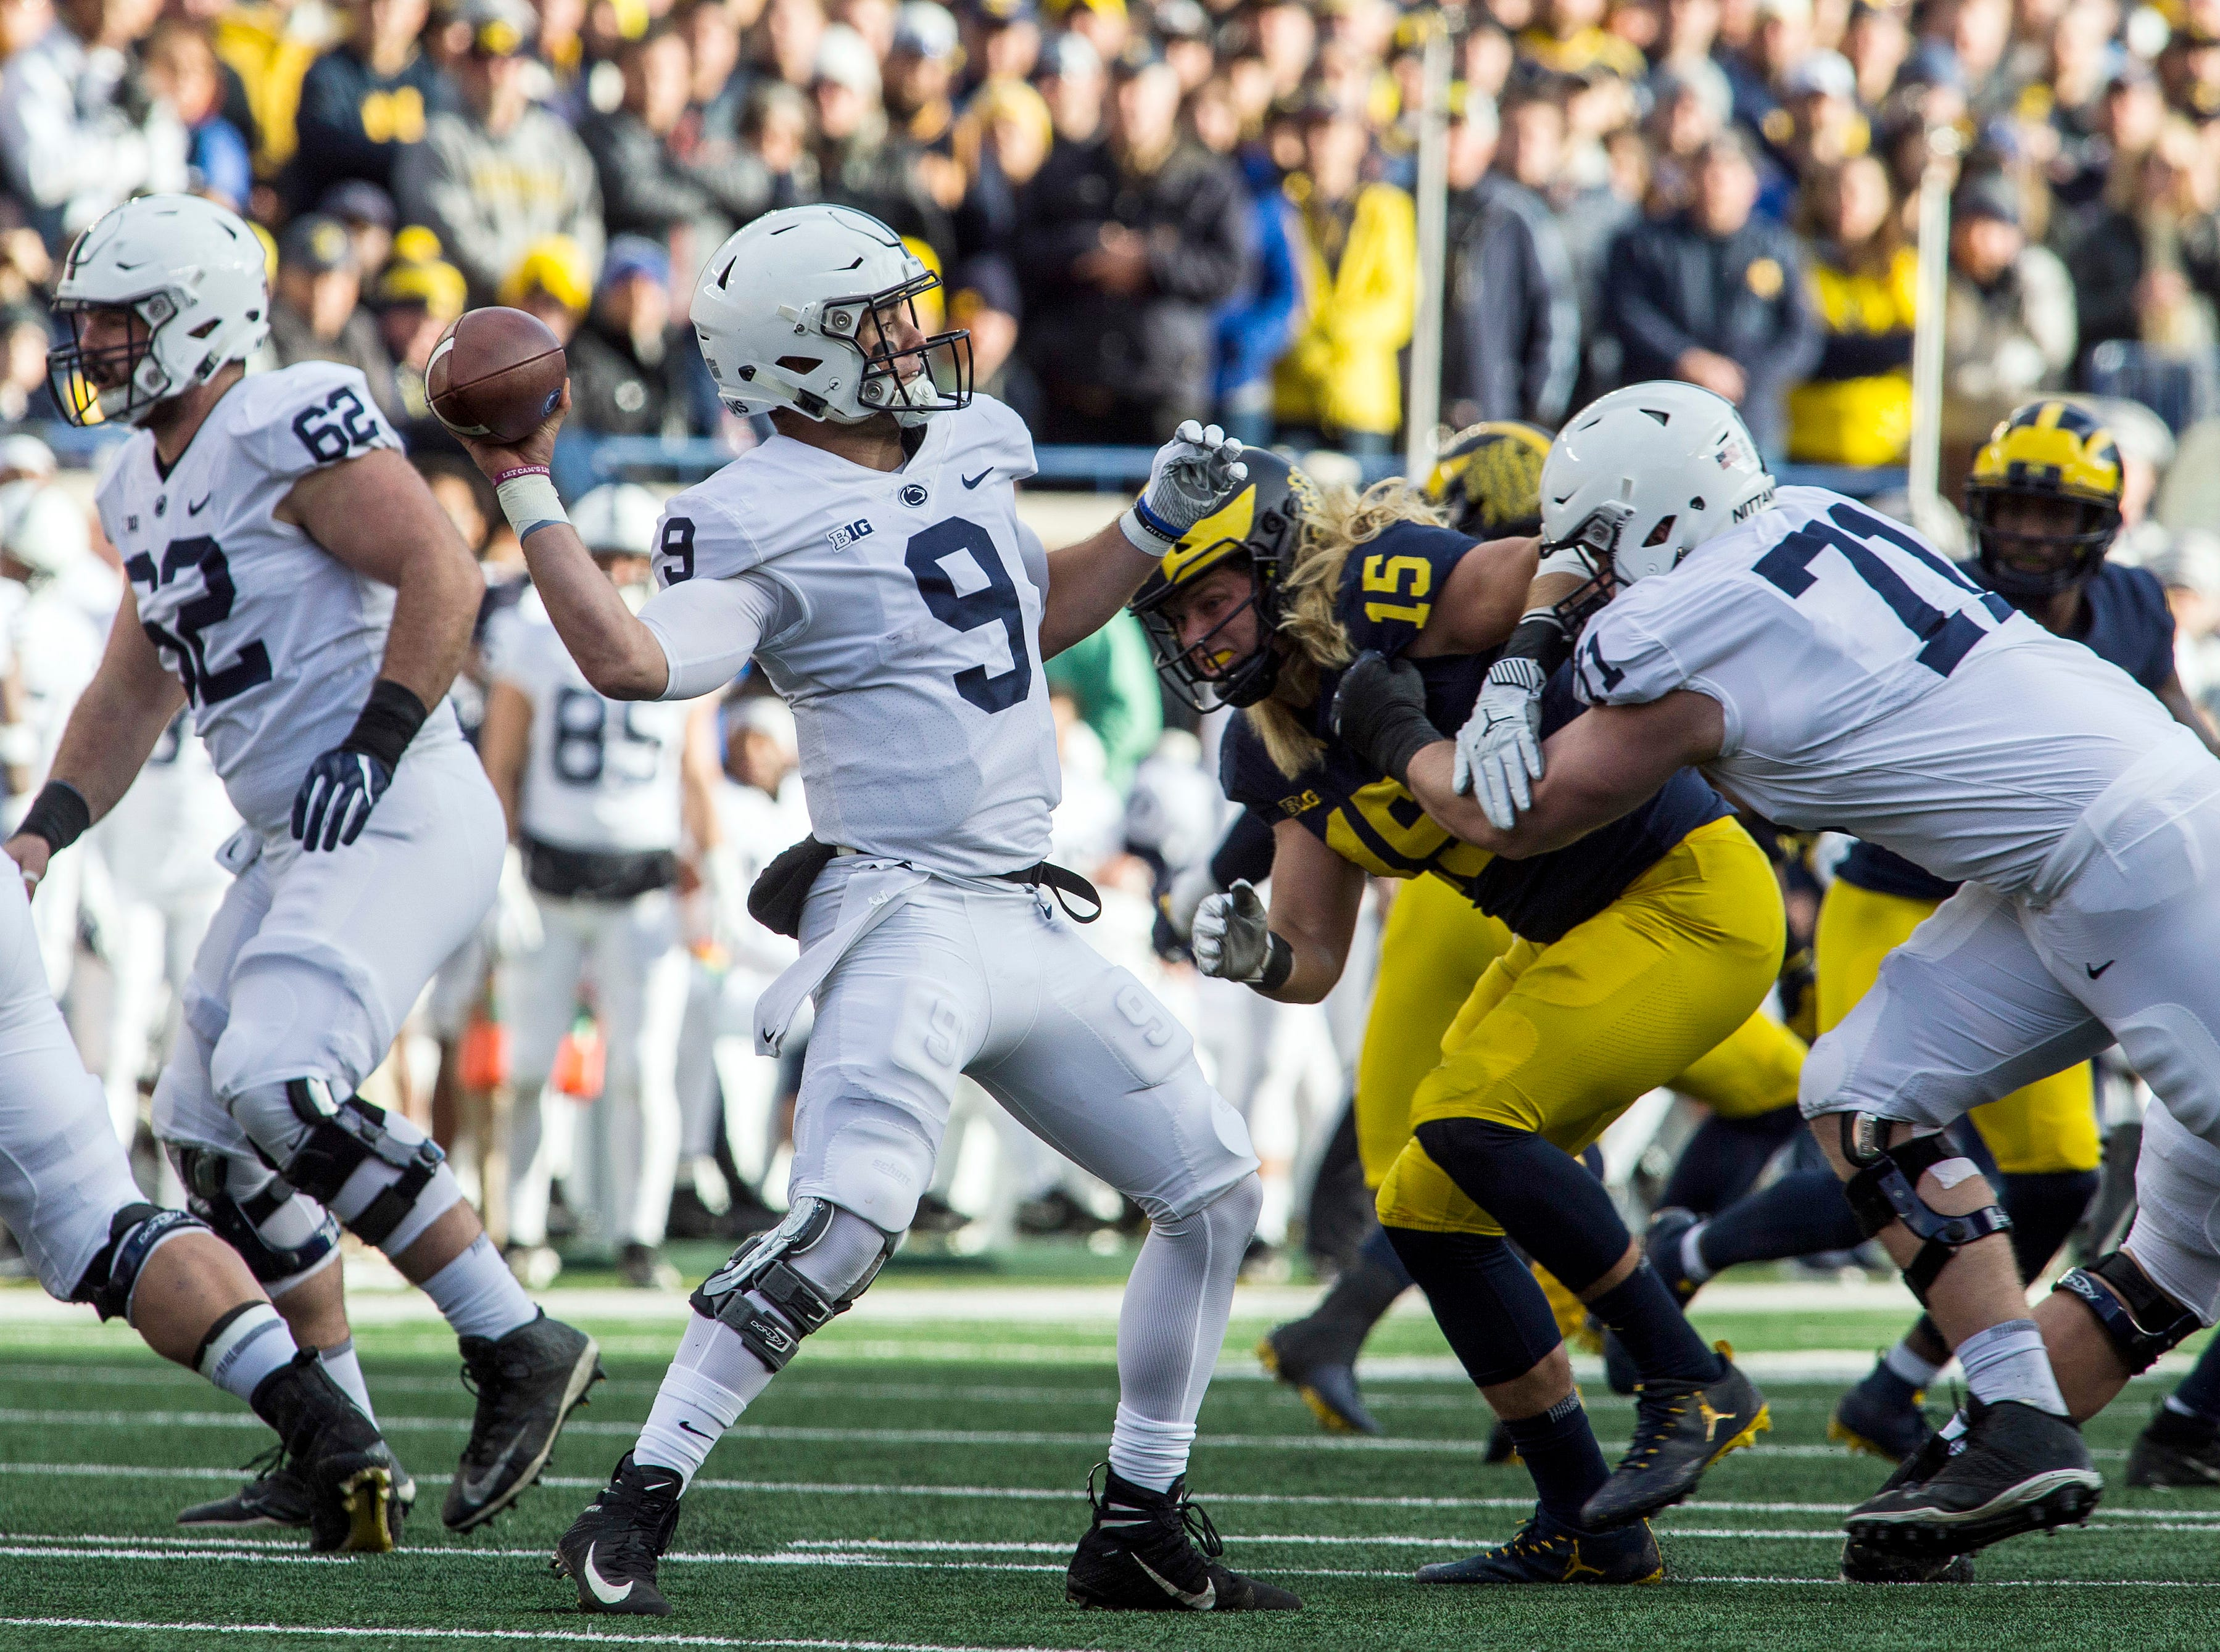 Penn State quarterback Trace McSorley (9) throws a pass, aided by a block from offensive lineman Will Fries (71) on Michigan defensive lineman Chase Winovich (15), in the second quarter of an NCAA college football game in Ann Arbor, Mich., Saturday, Nov. 3, 2018. (AP Photo/Tony Ding)